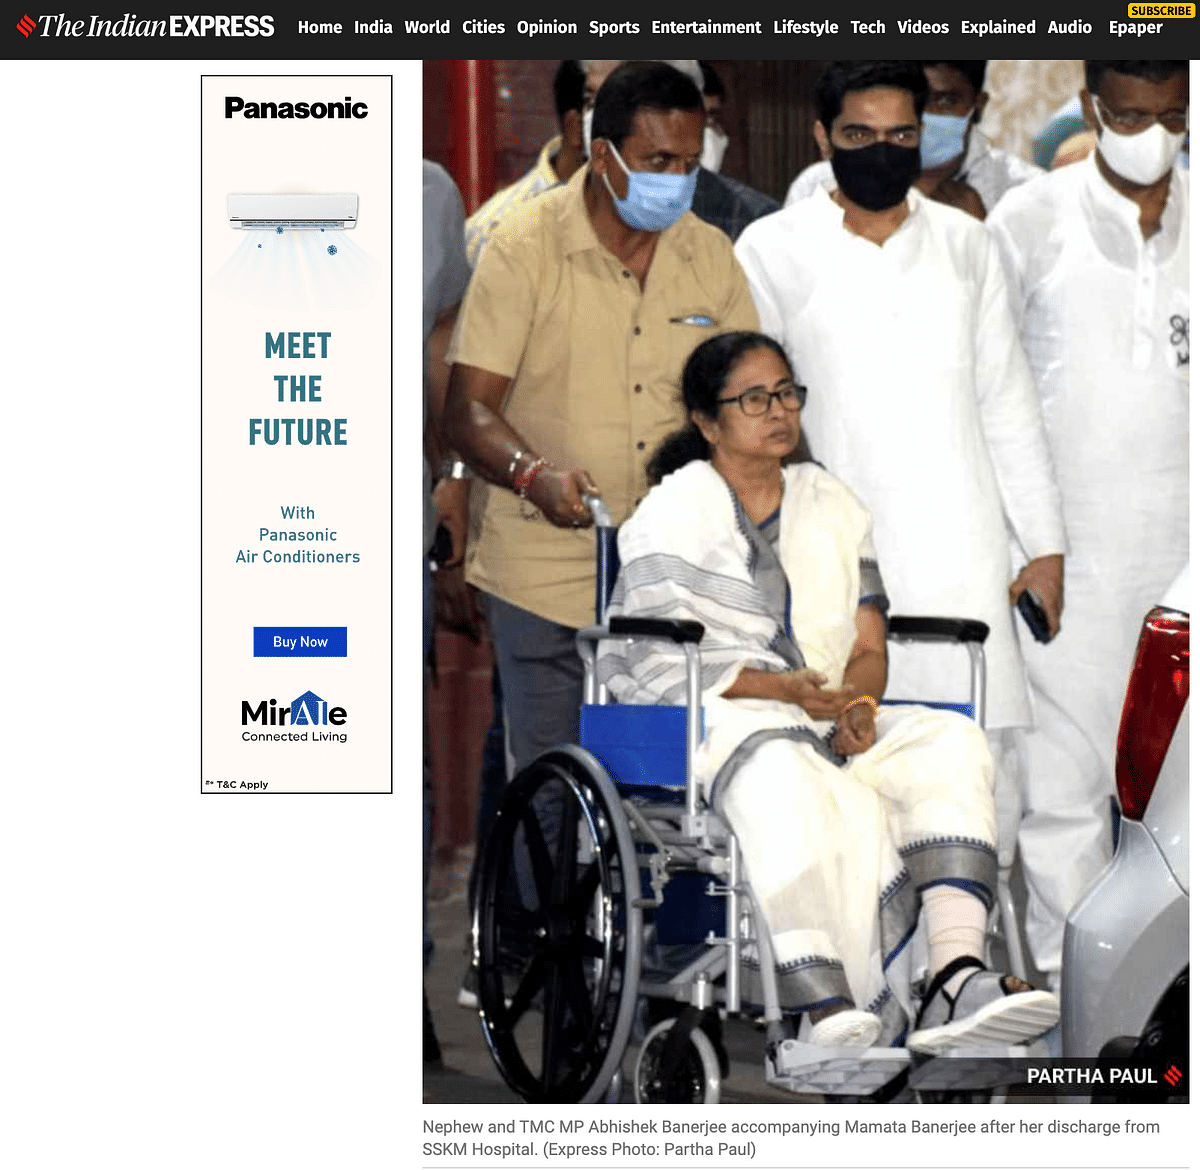 Flipped Pic Claims Mamata's Injury Shifted From Left to Right Leg